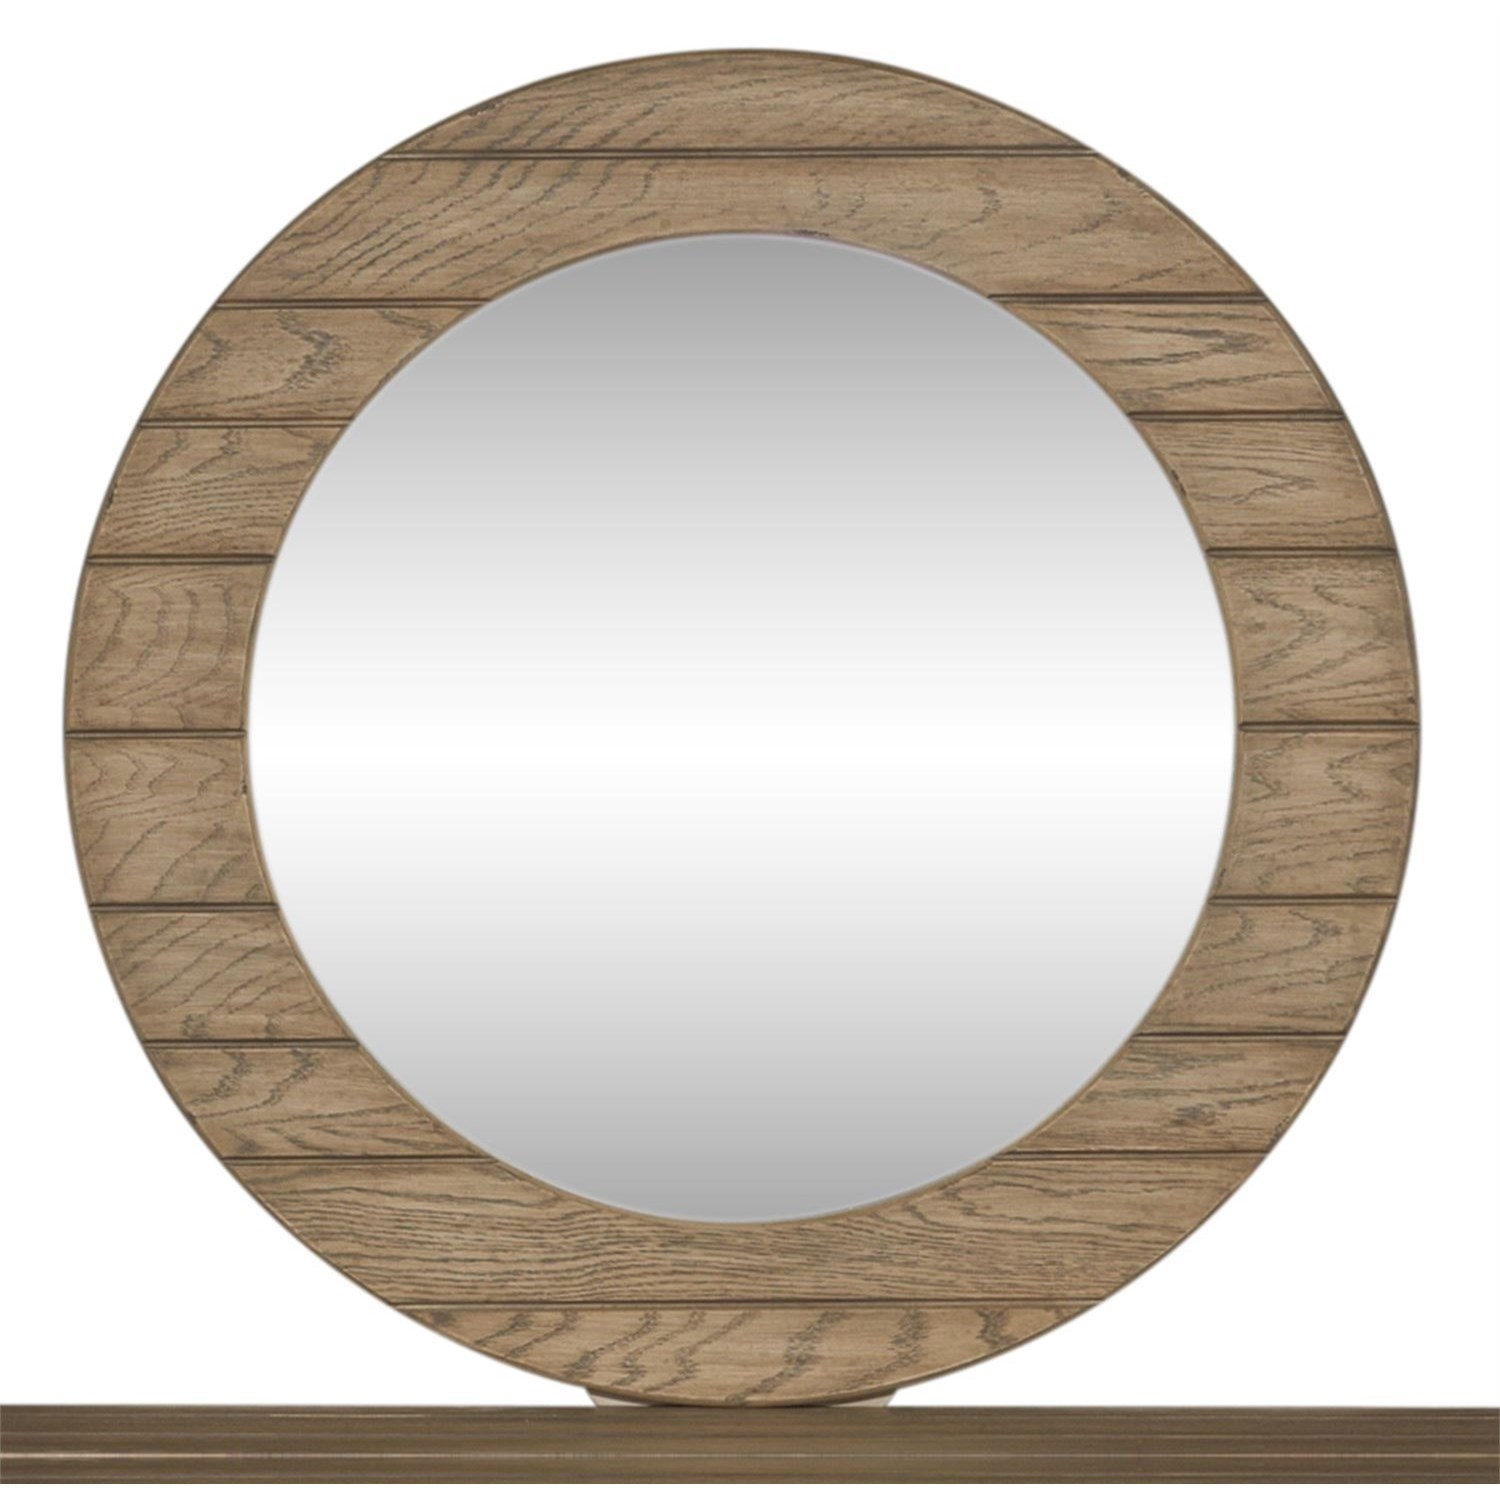 Heartland Round Mirror by Liberty Furniture at Northeast Factory Direct